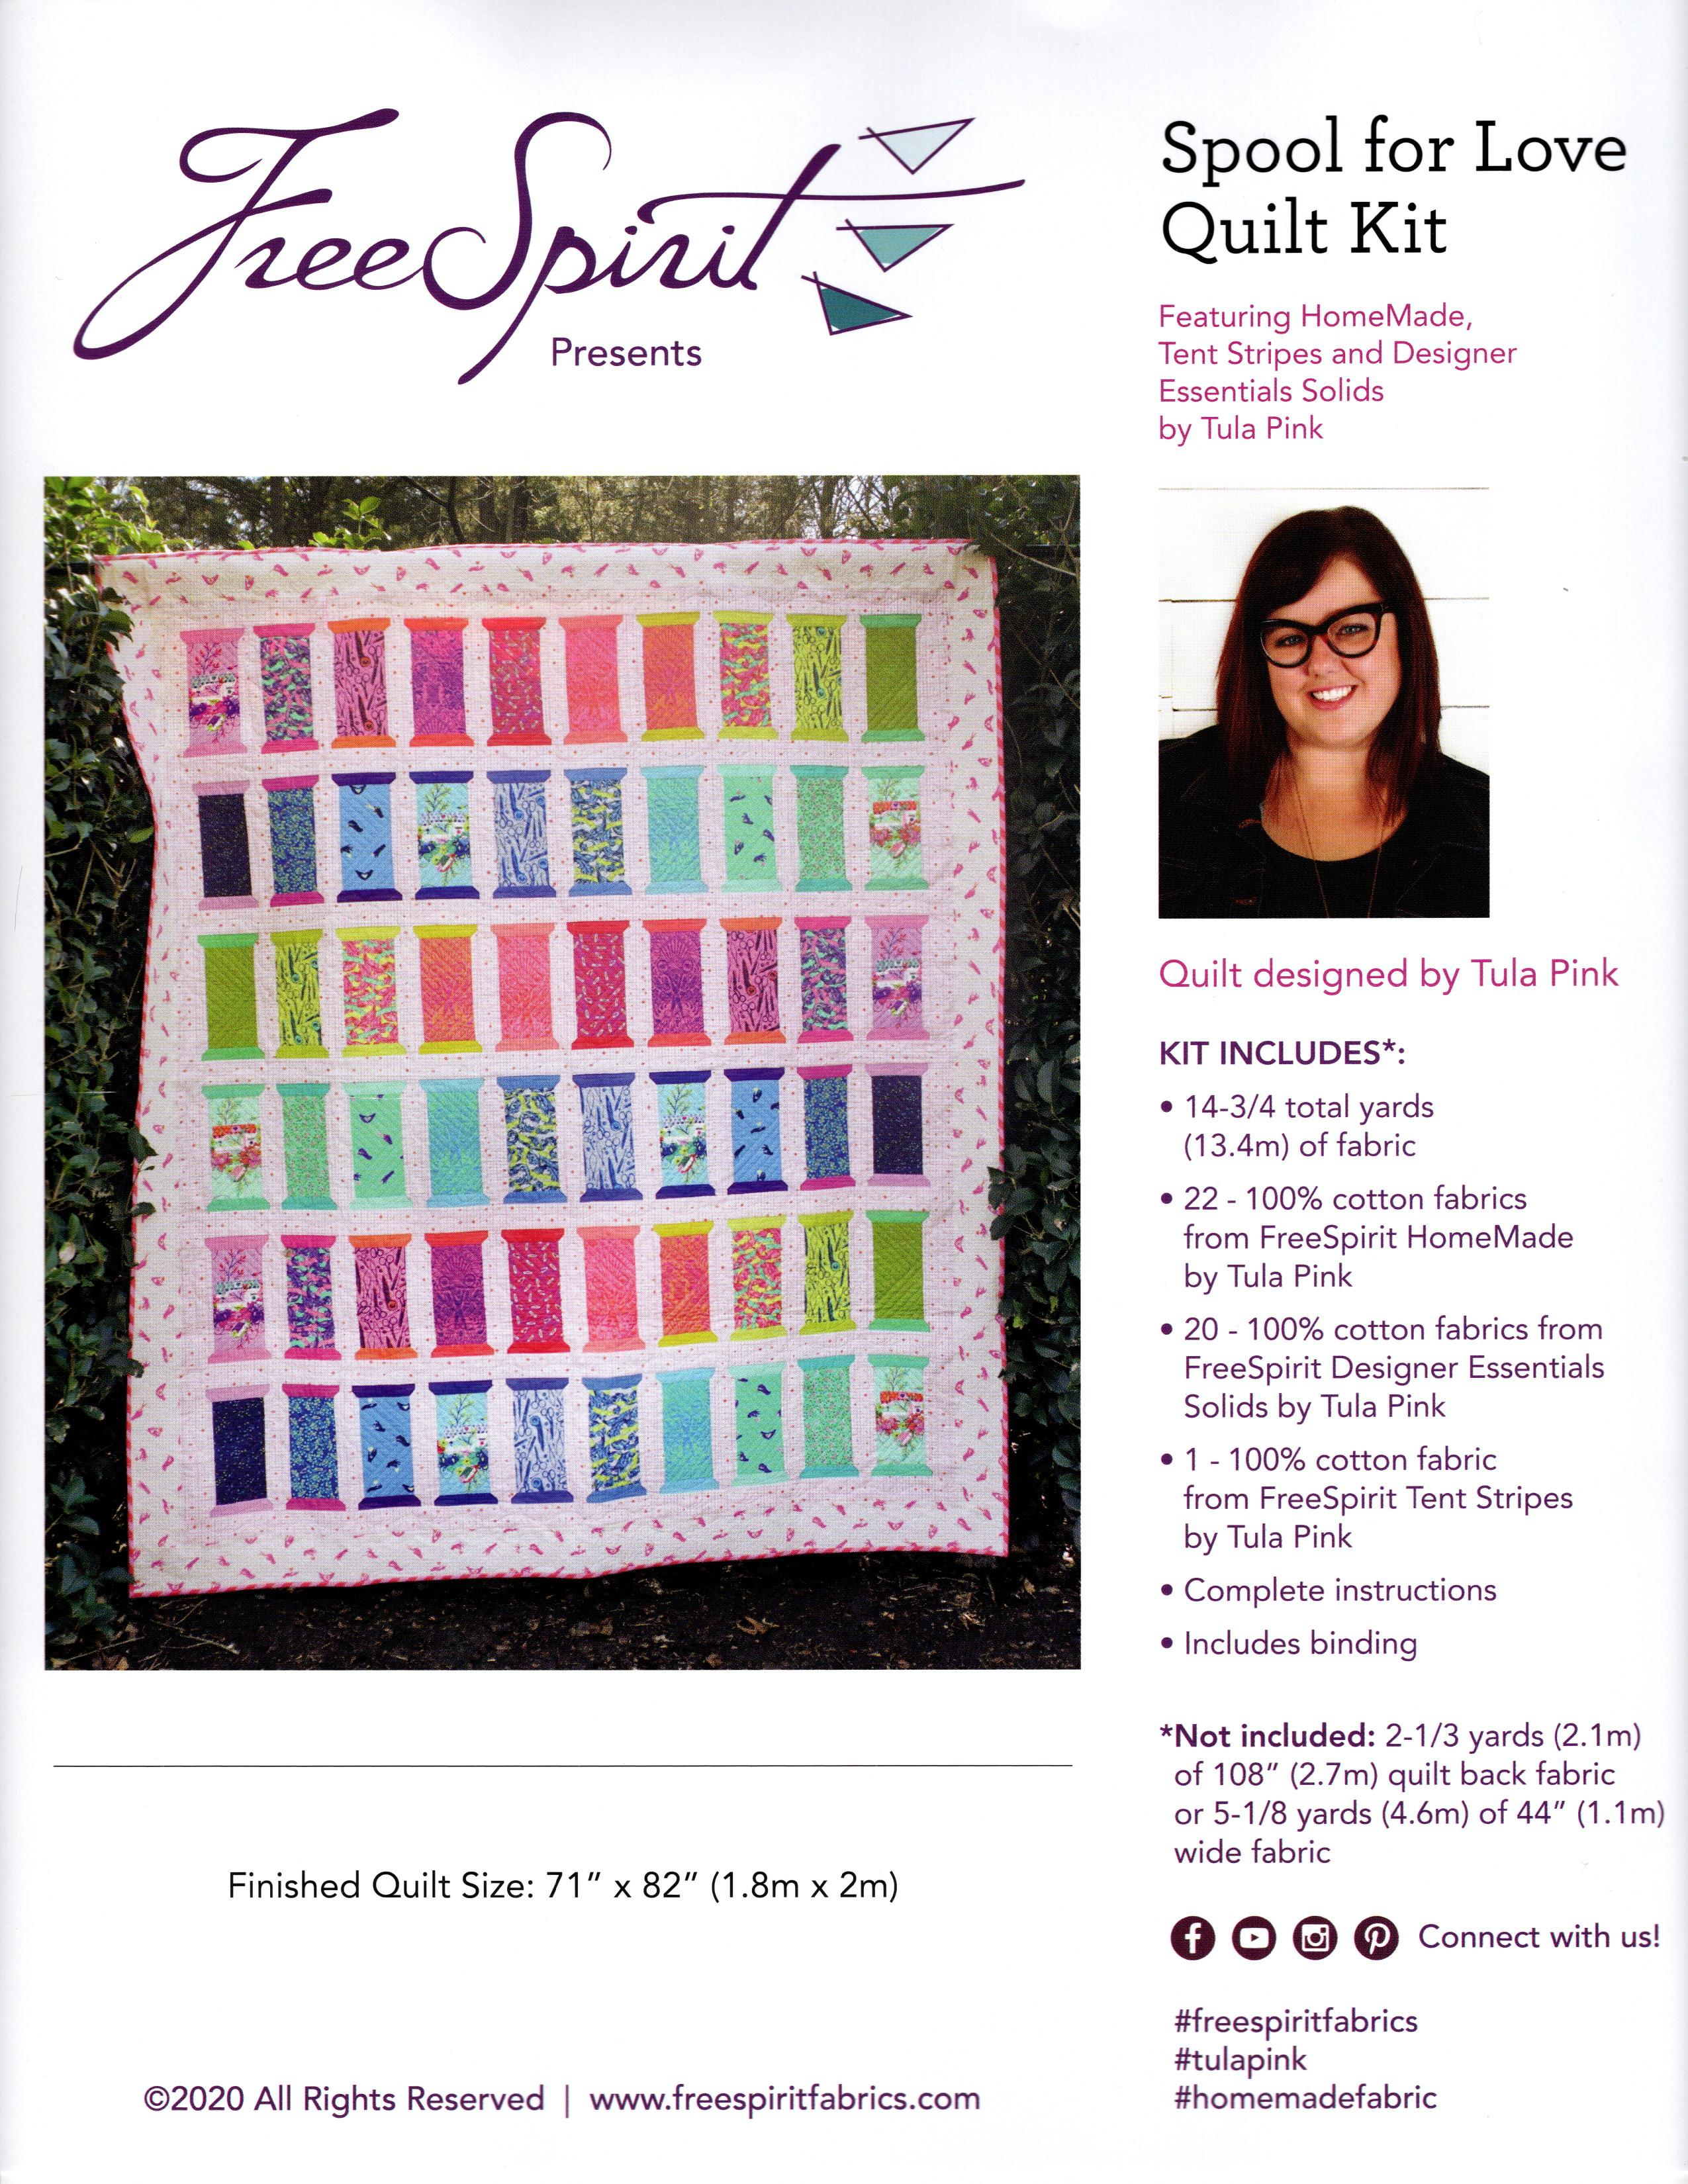 Tula Pink - HomeMade Spool for Love Quilt Kit